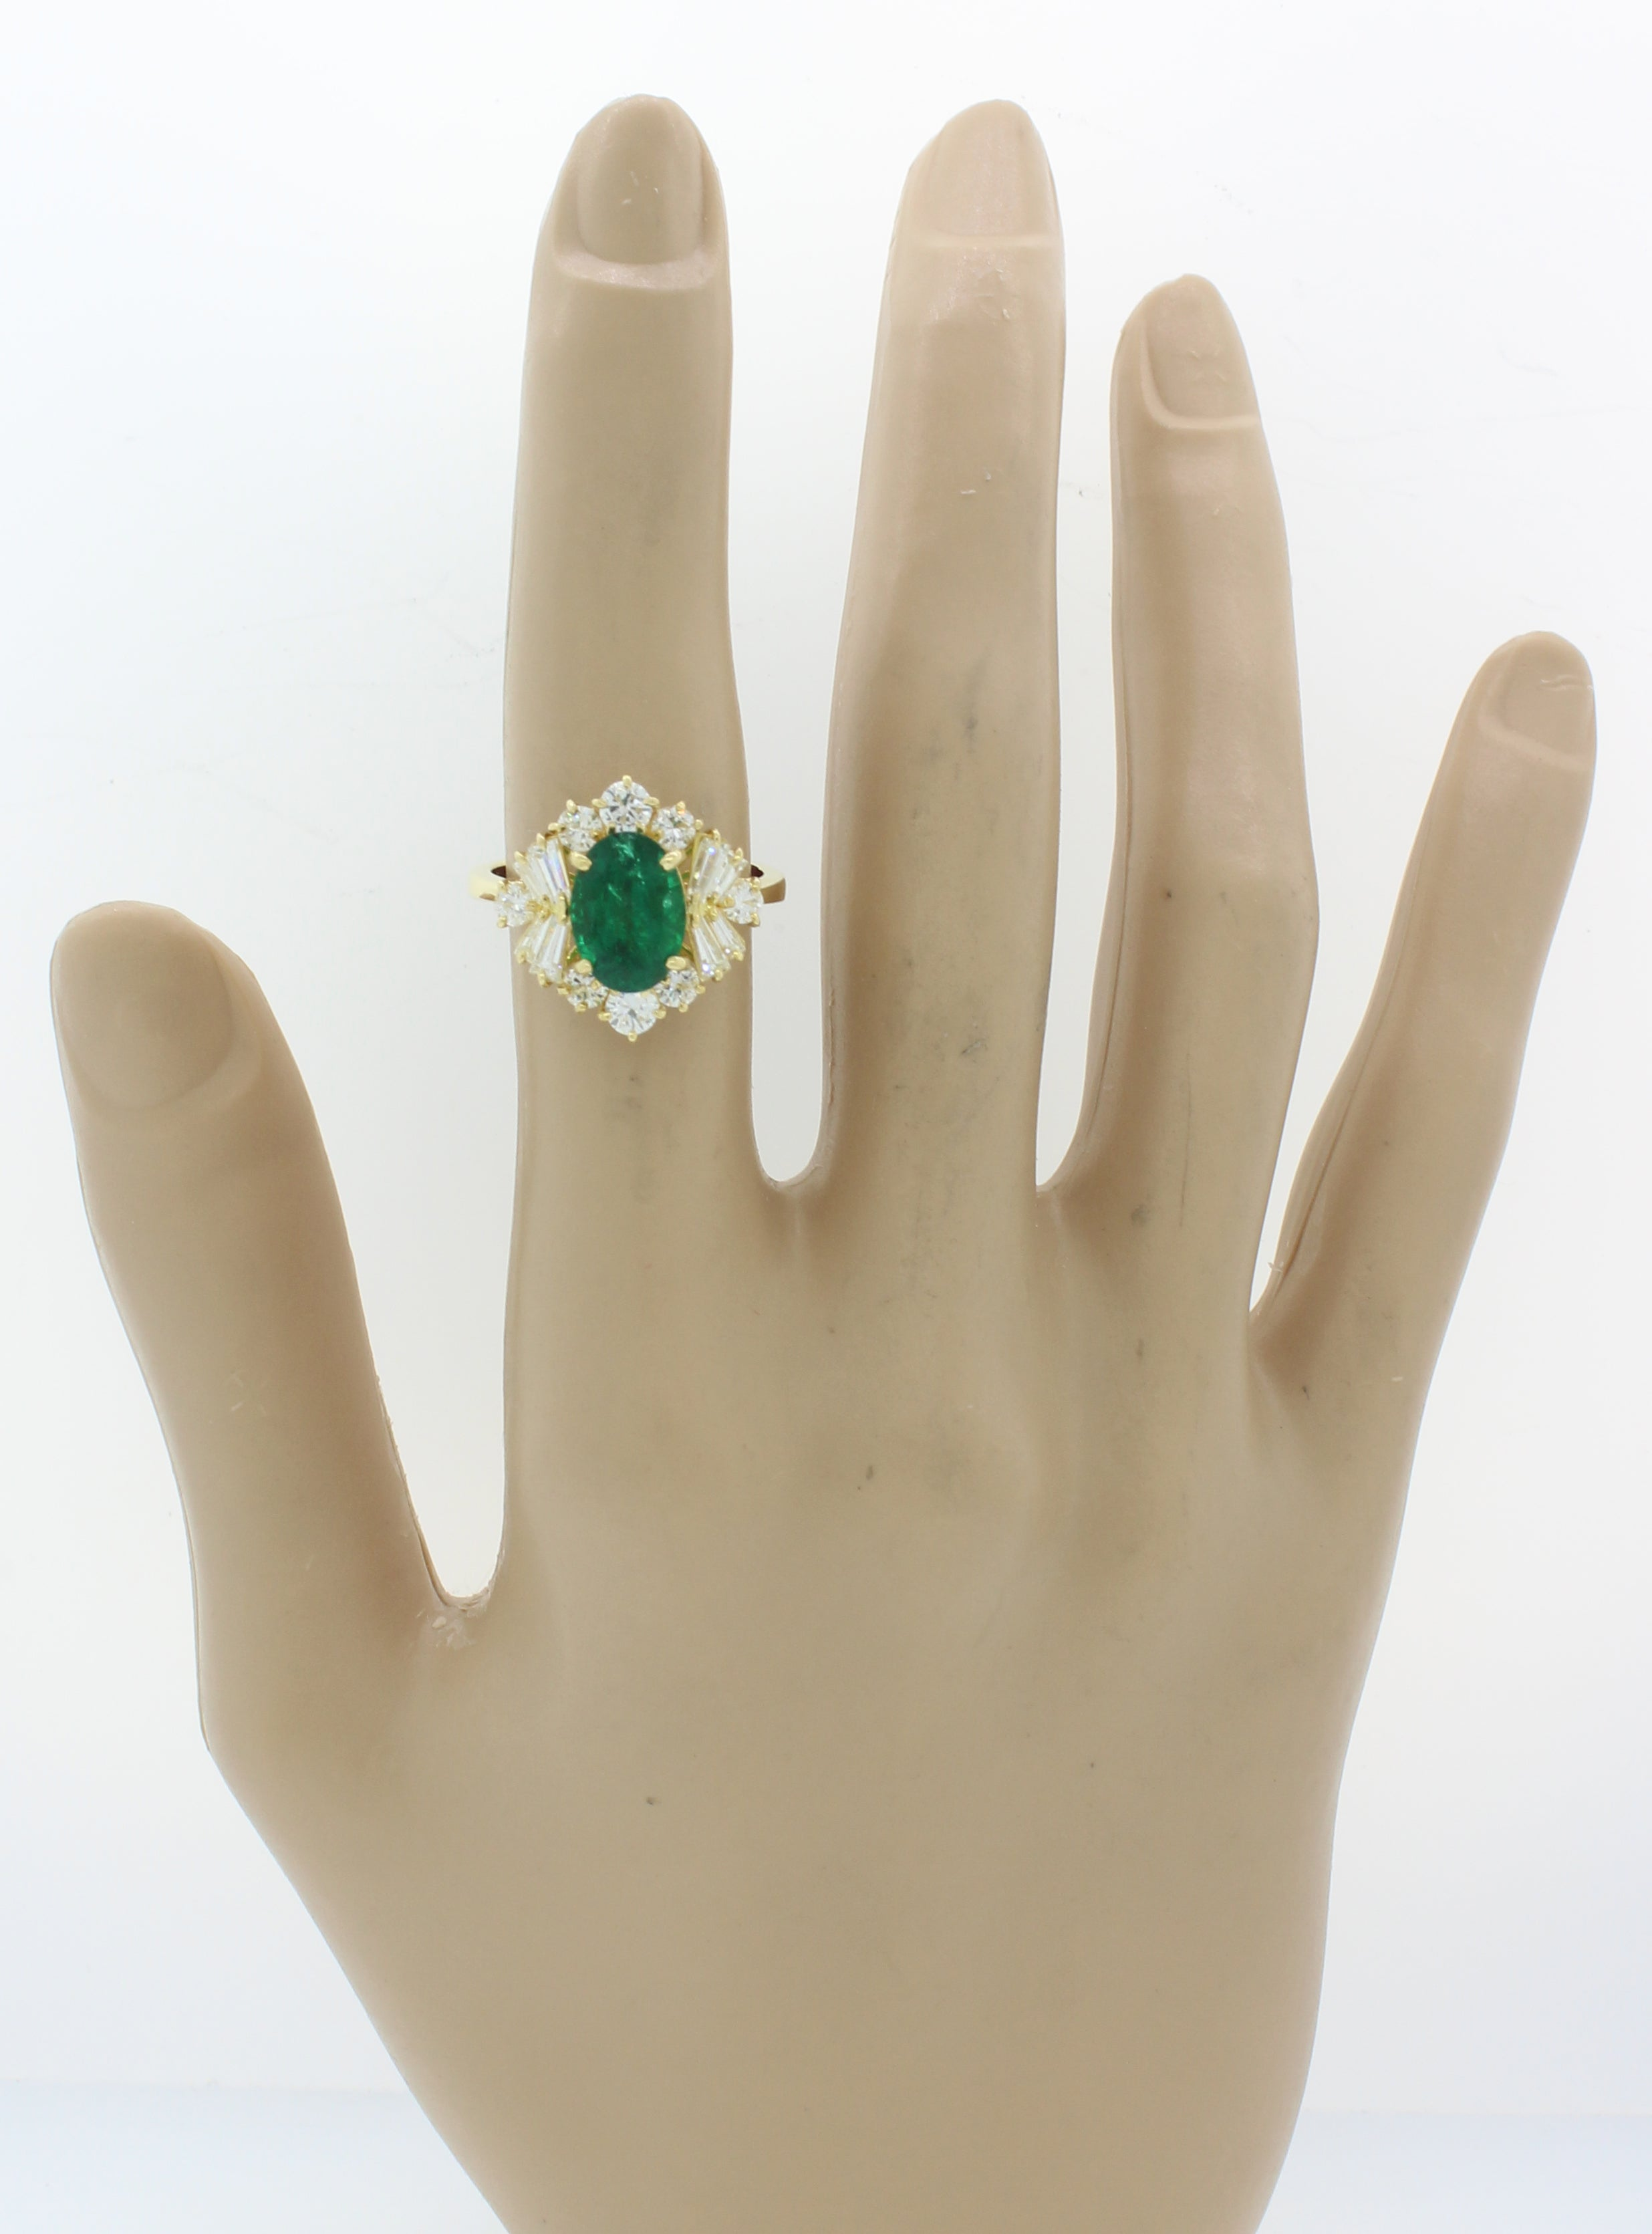 Vtg Estate 18k Yellow Gold 3.47ctw Emerald Diamond Engagement Ring EGL $11540